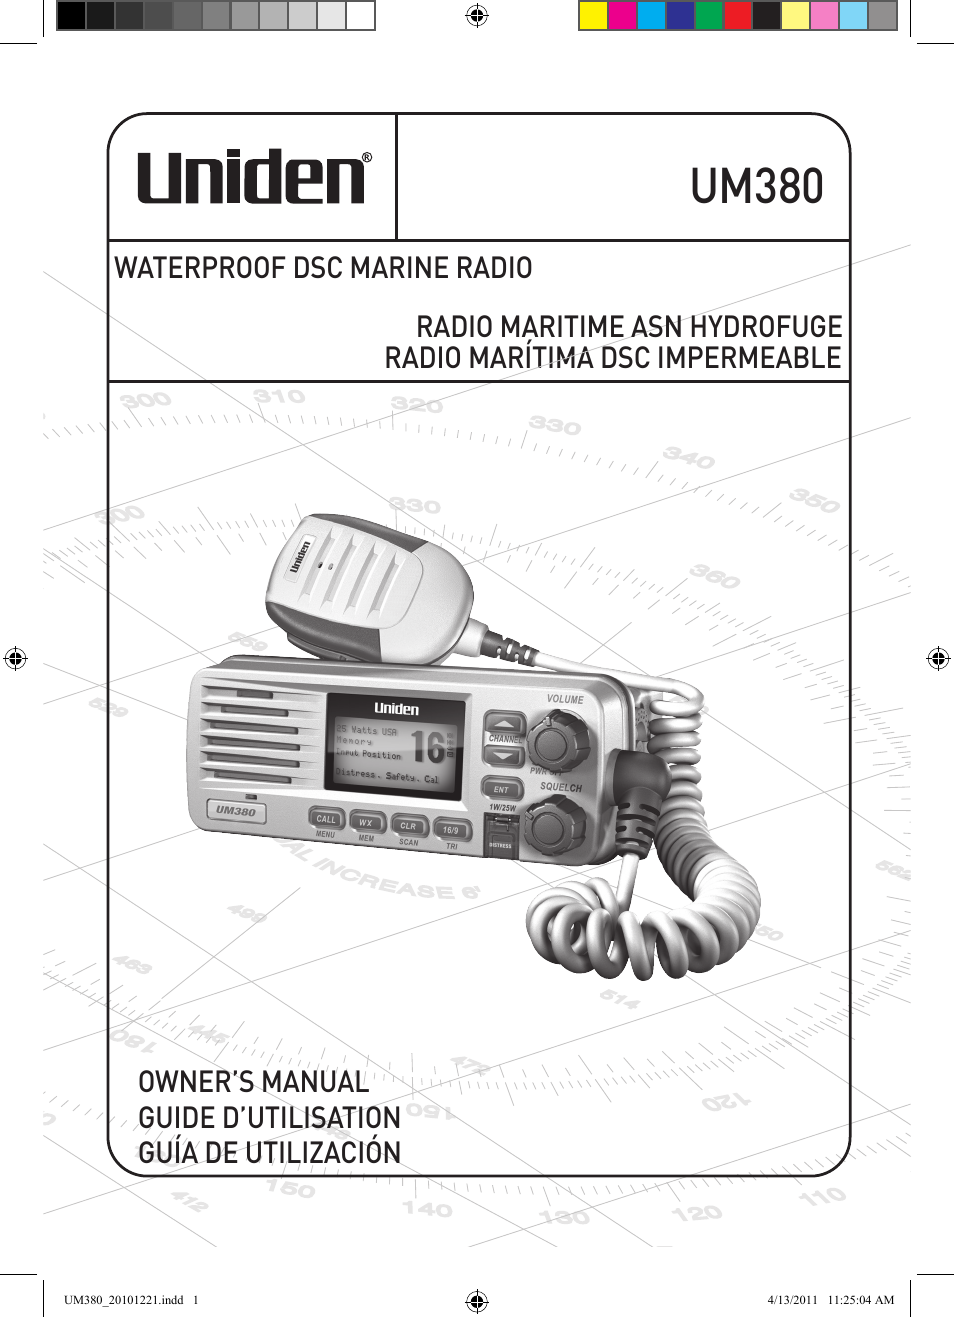 uniden waterproof dsc marine radio um380 user manual 56 pages rh manualsdir com uniden mc535 marine radio manual uniden mc535 marine radio manual